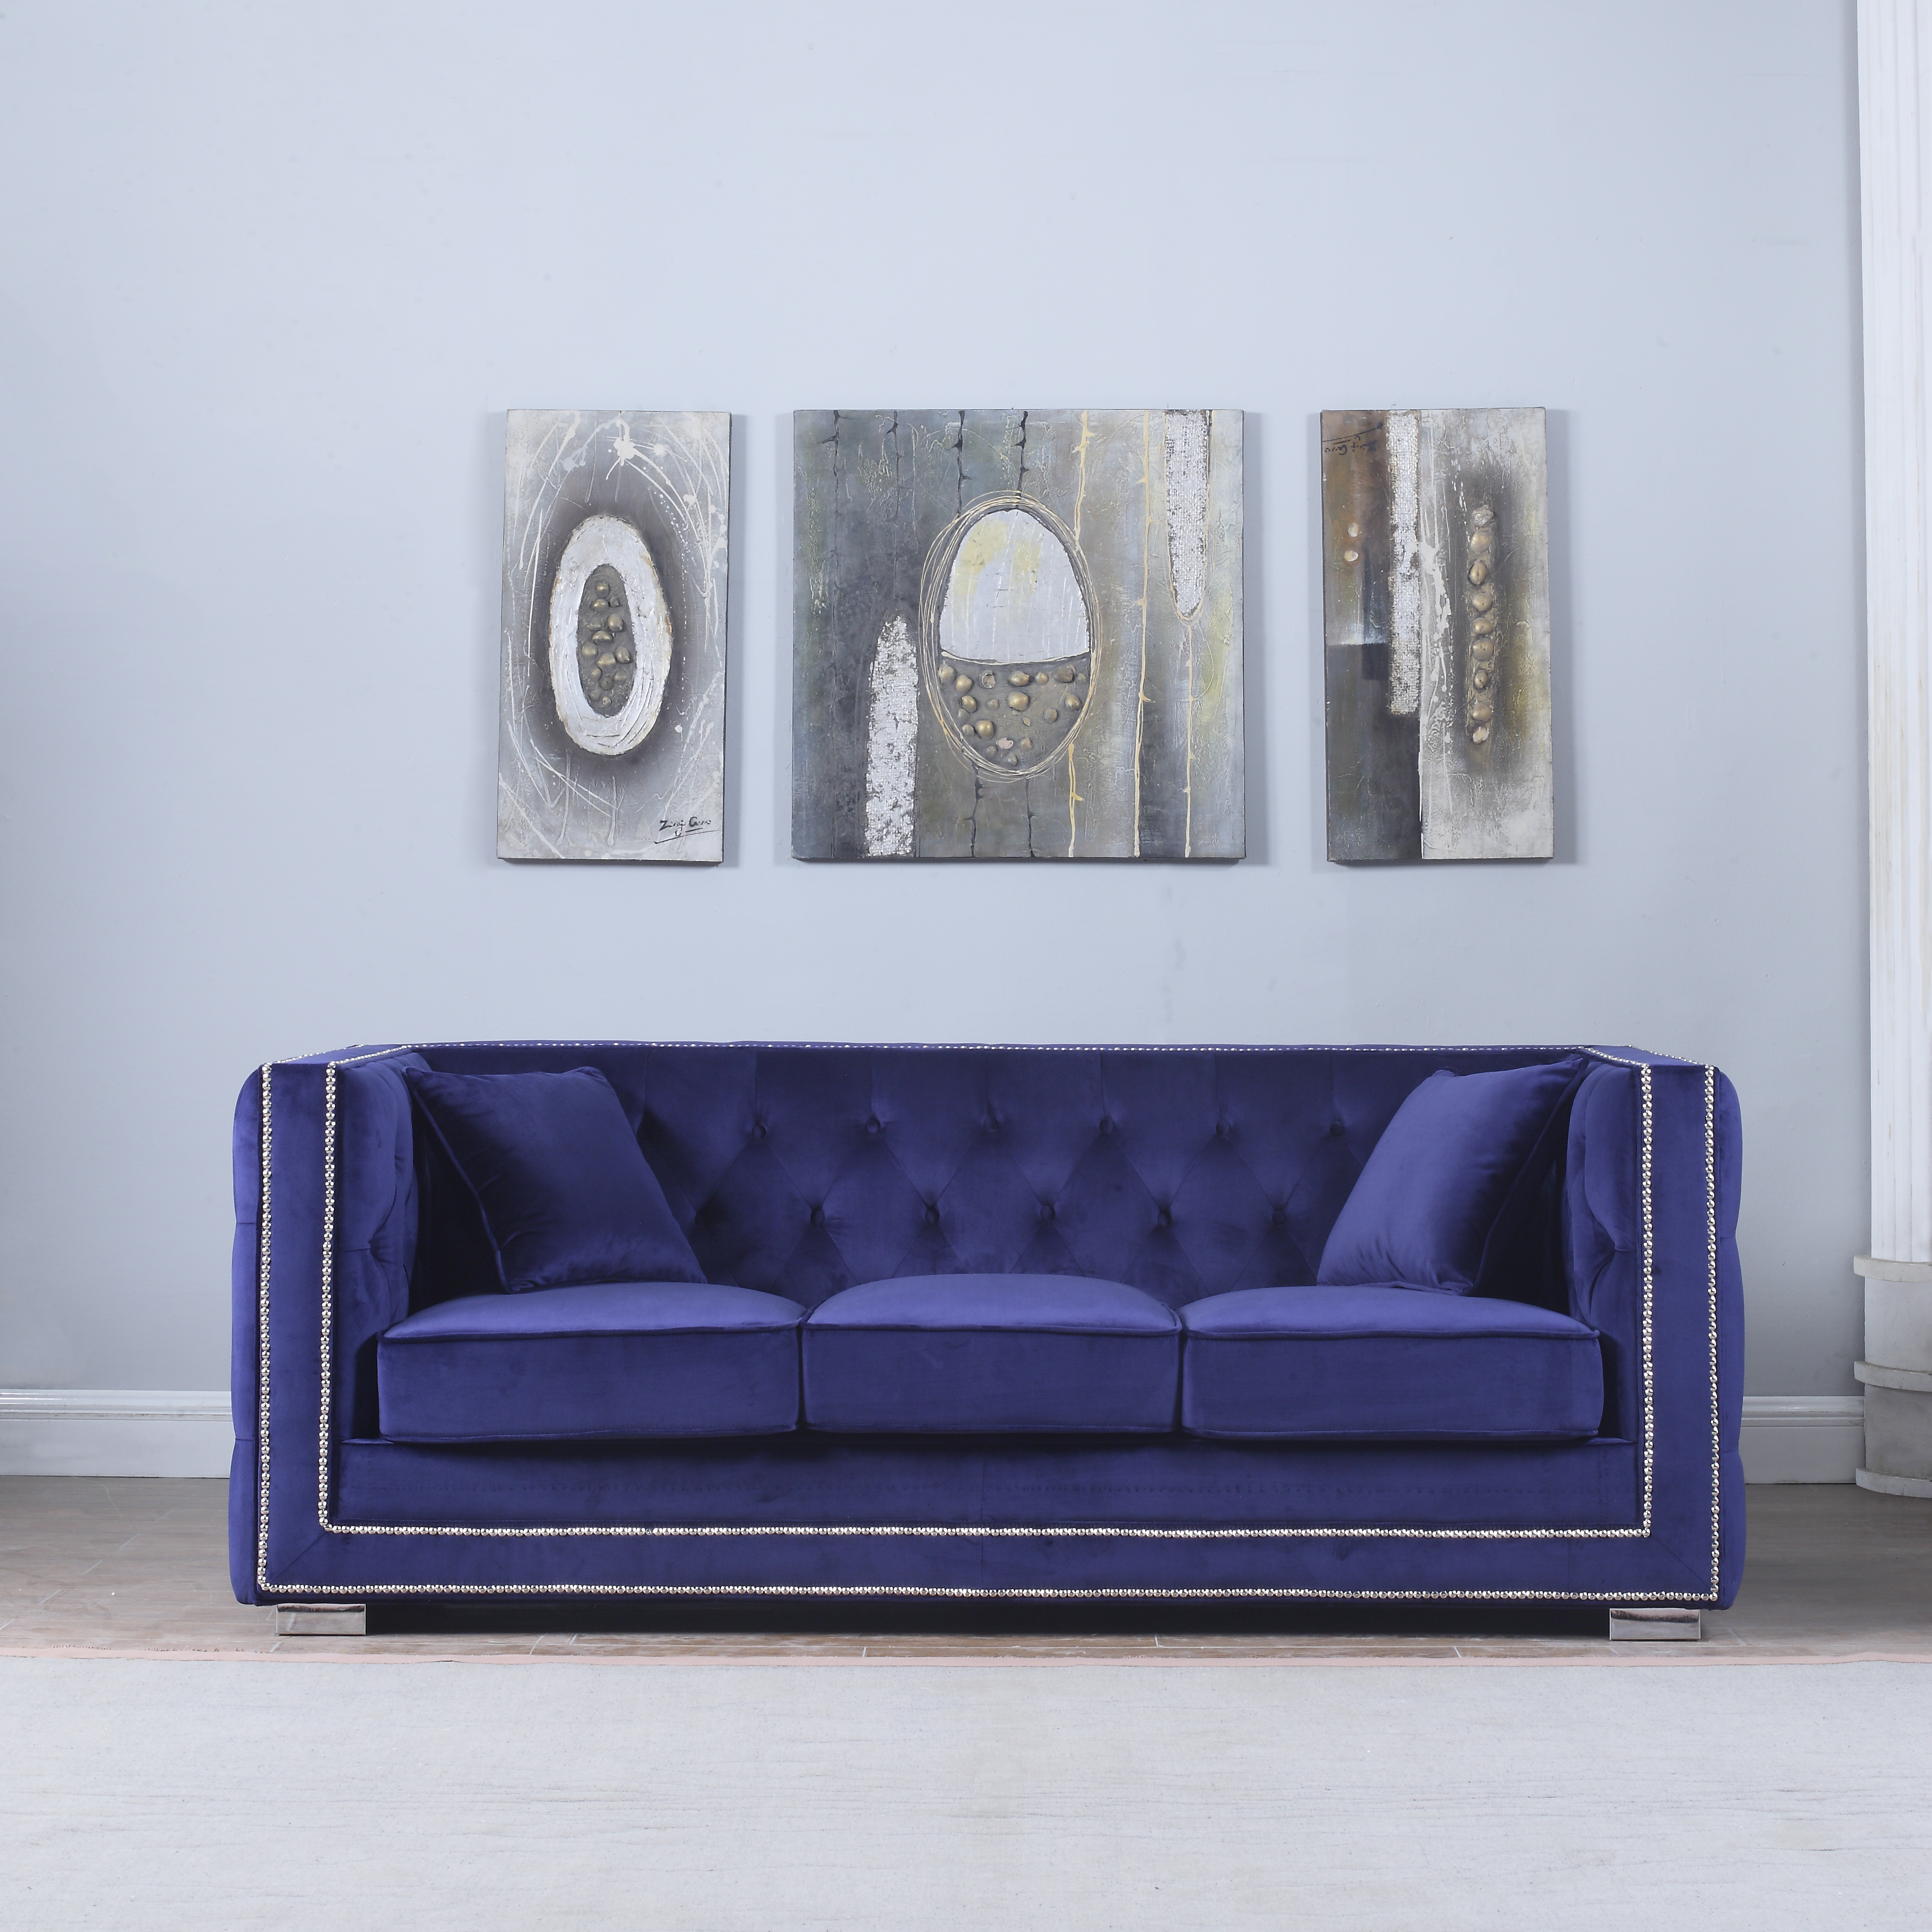 Modern Tufted Velvet Fabric Sofa with Nailhead Trim